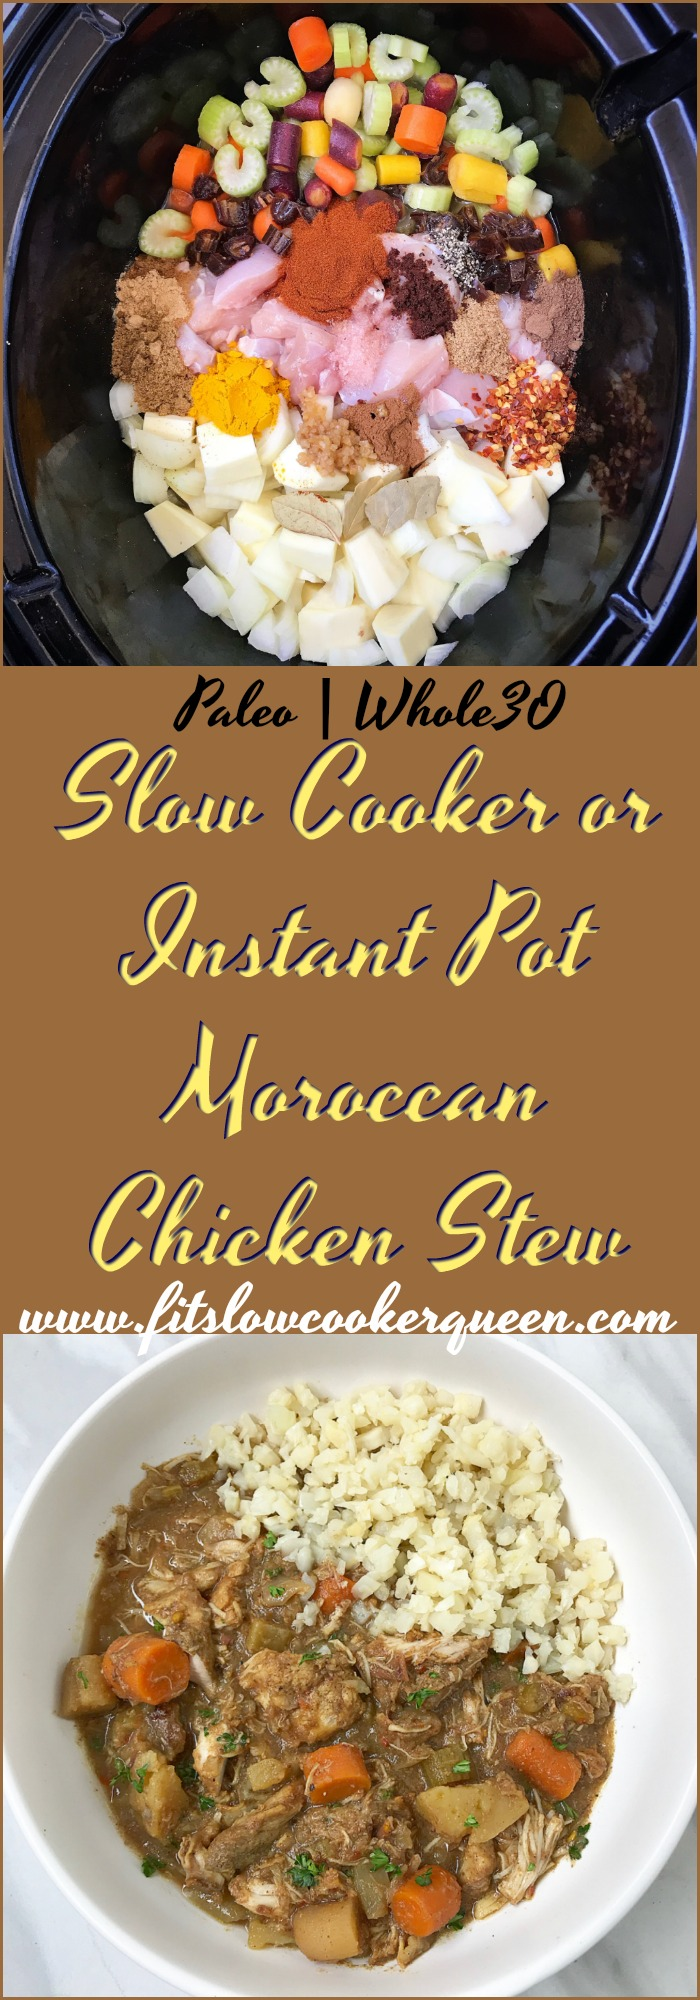 This Moroccan chicken stew has so many flavors it can't help but fill your kitchen with an amazing aroma. Use your slow cooker or Instant Pot for this recipe.